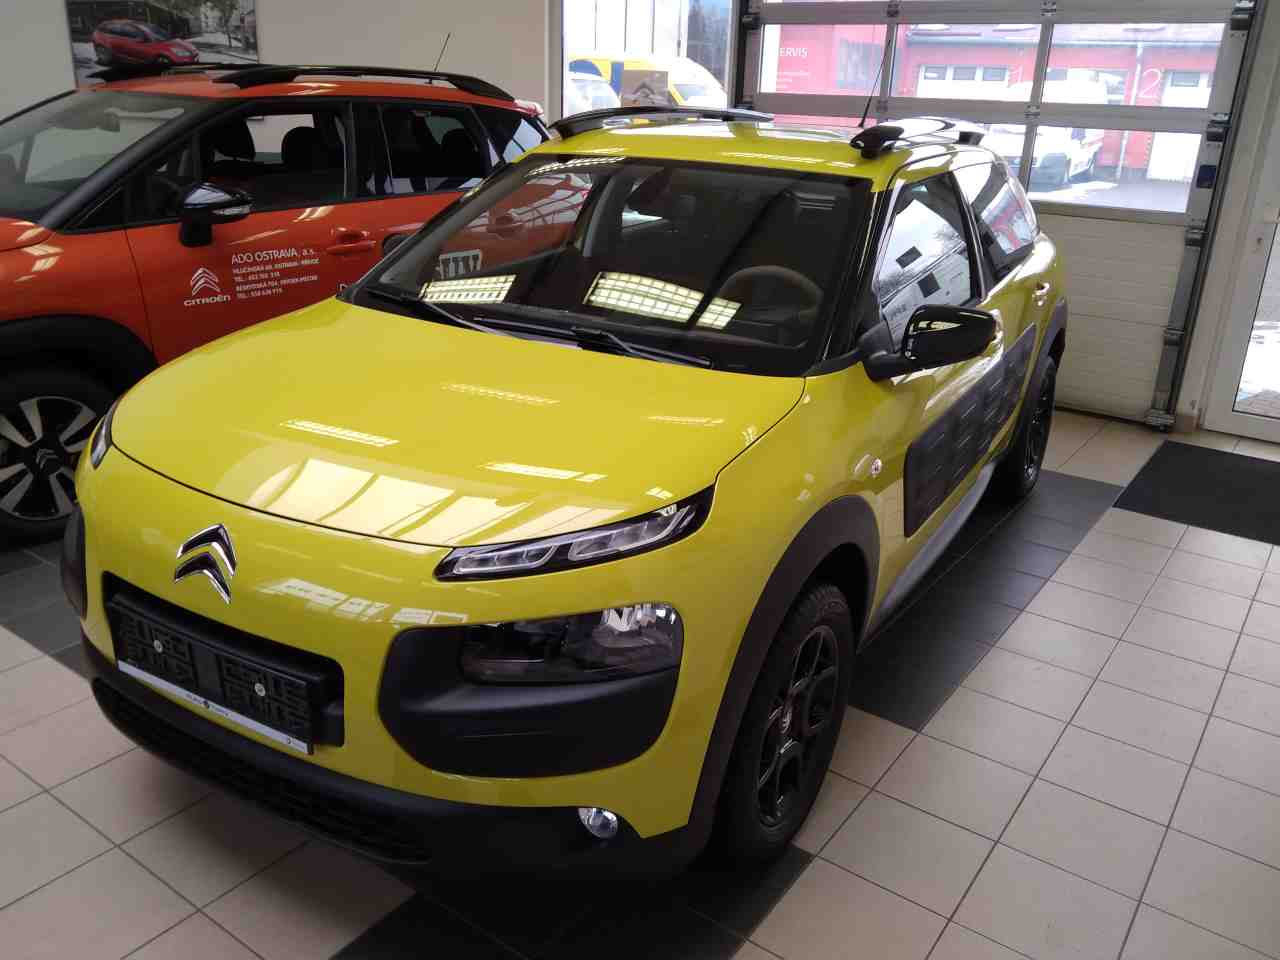 Citroën C4 Cactus (still no-name)